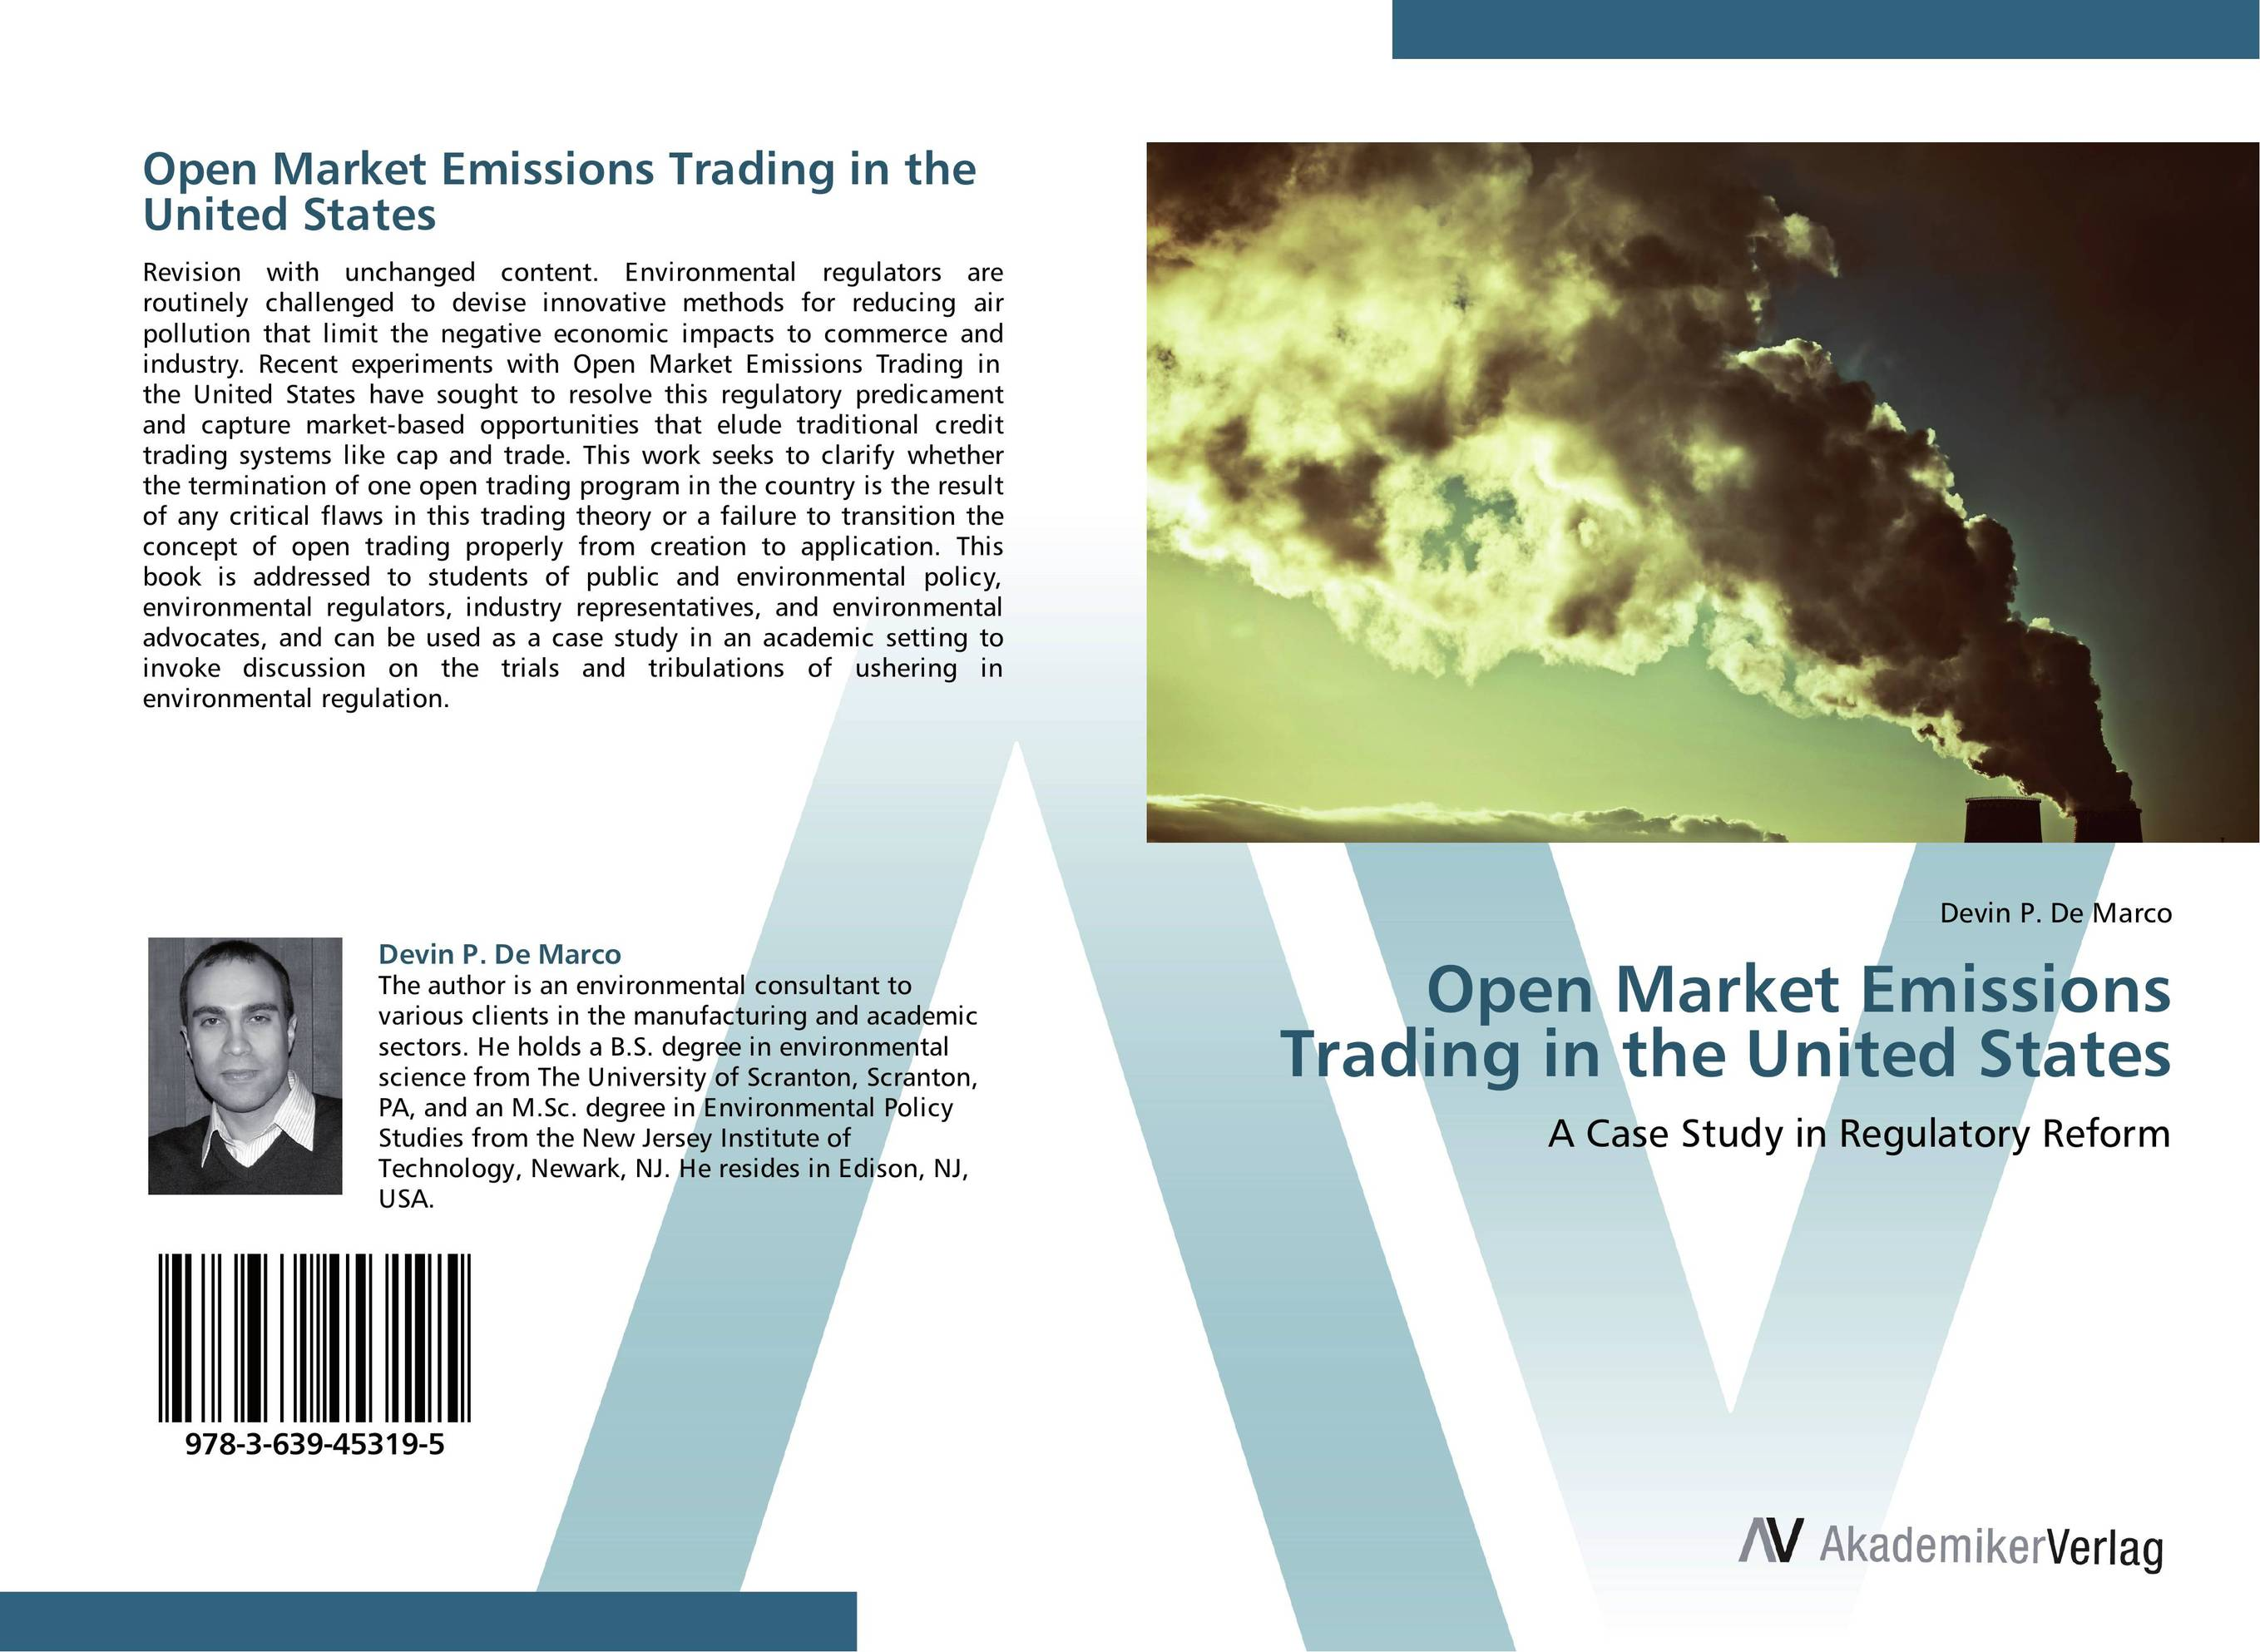 Open Market Emissions Trading in the United States daryl guppy market trading tactics